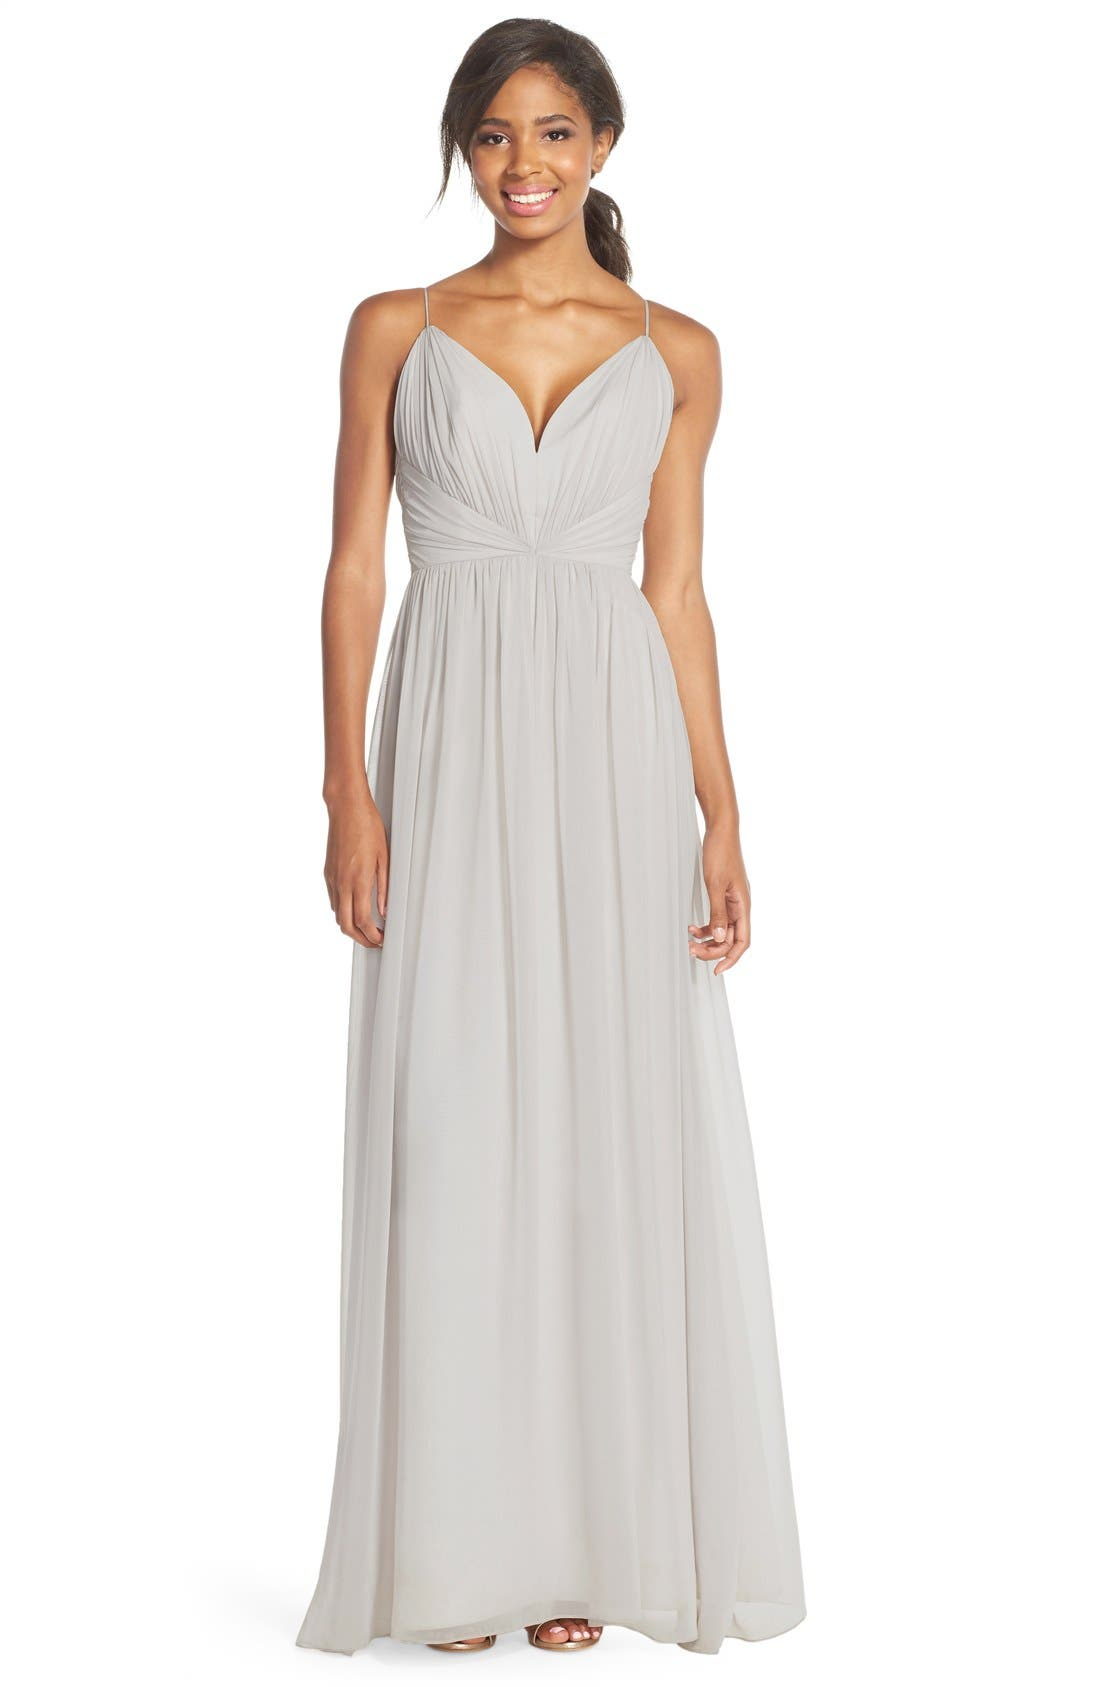 Jim Hjelm Occasions Bridesmaid & Wedding Party Dresses | Nordstrom